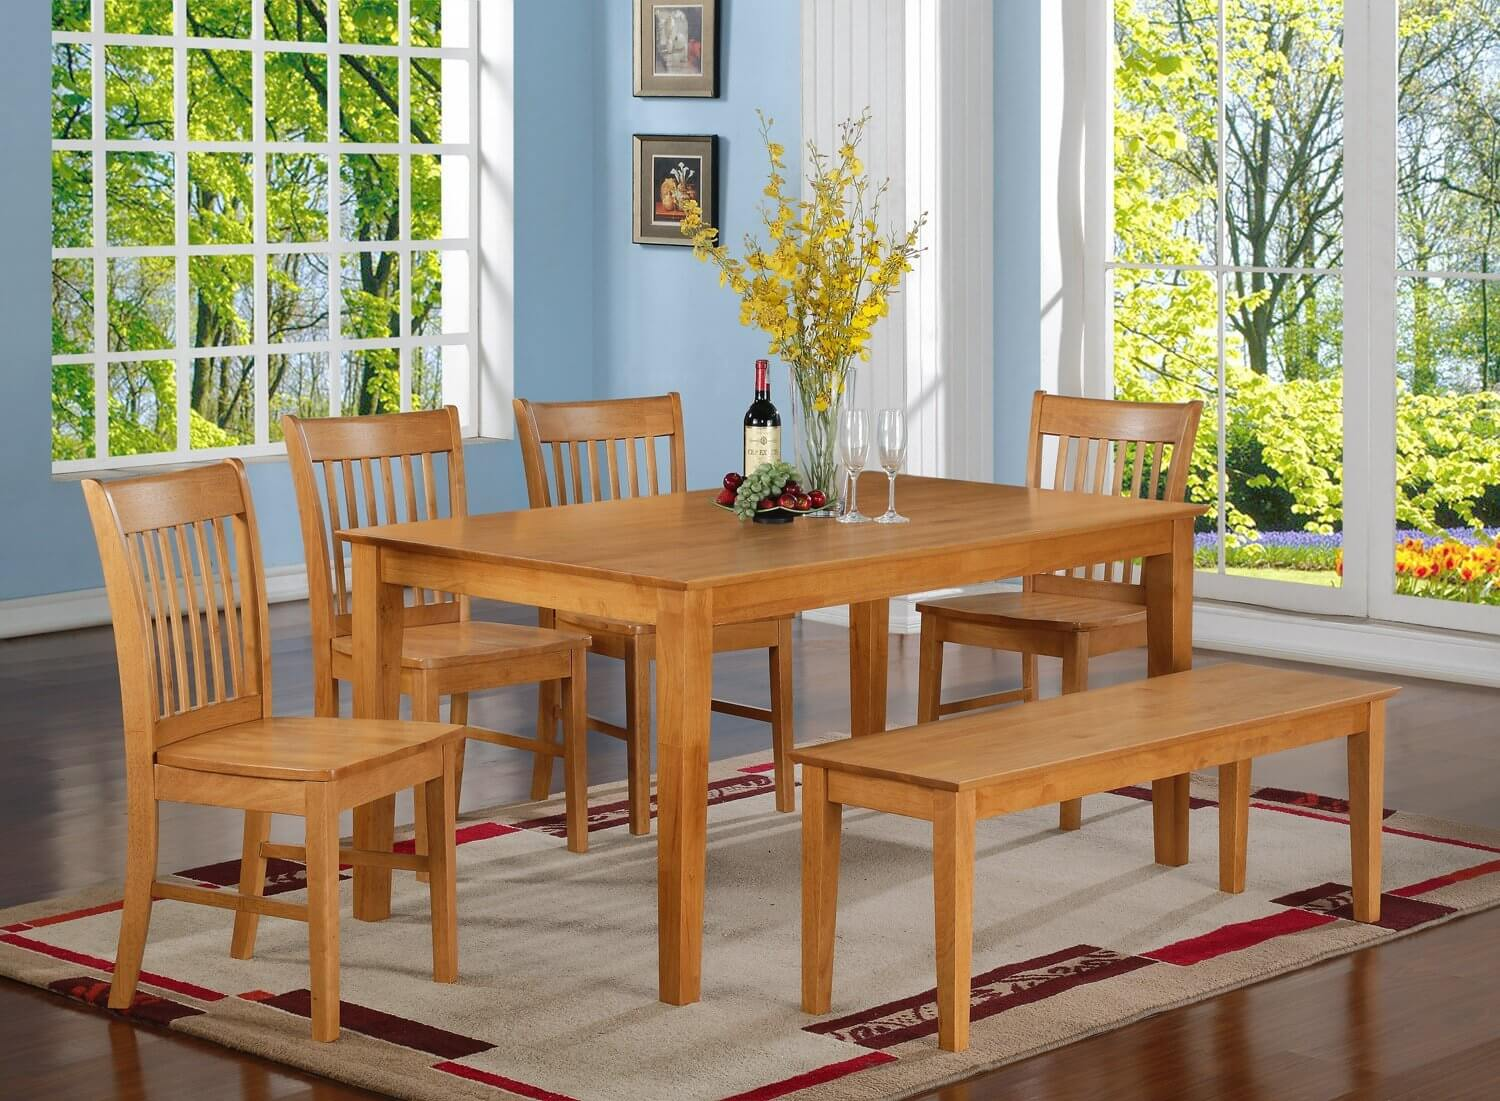 39aaa8a6885 Oak finish six piece bench-style dining room set with large rectangle table.  It s